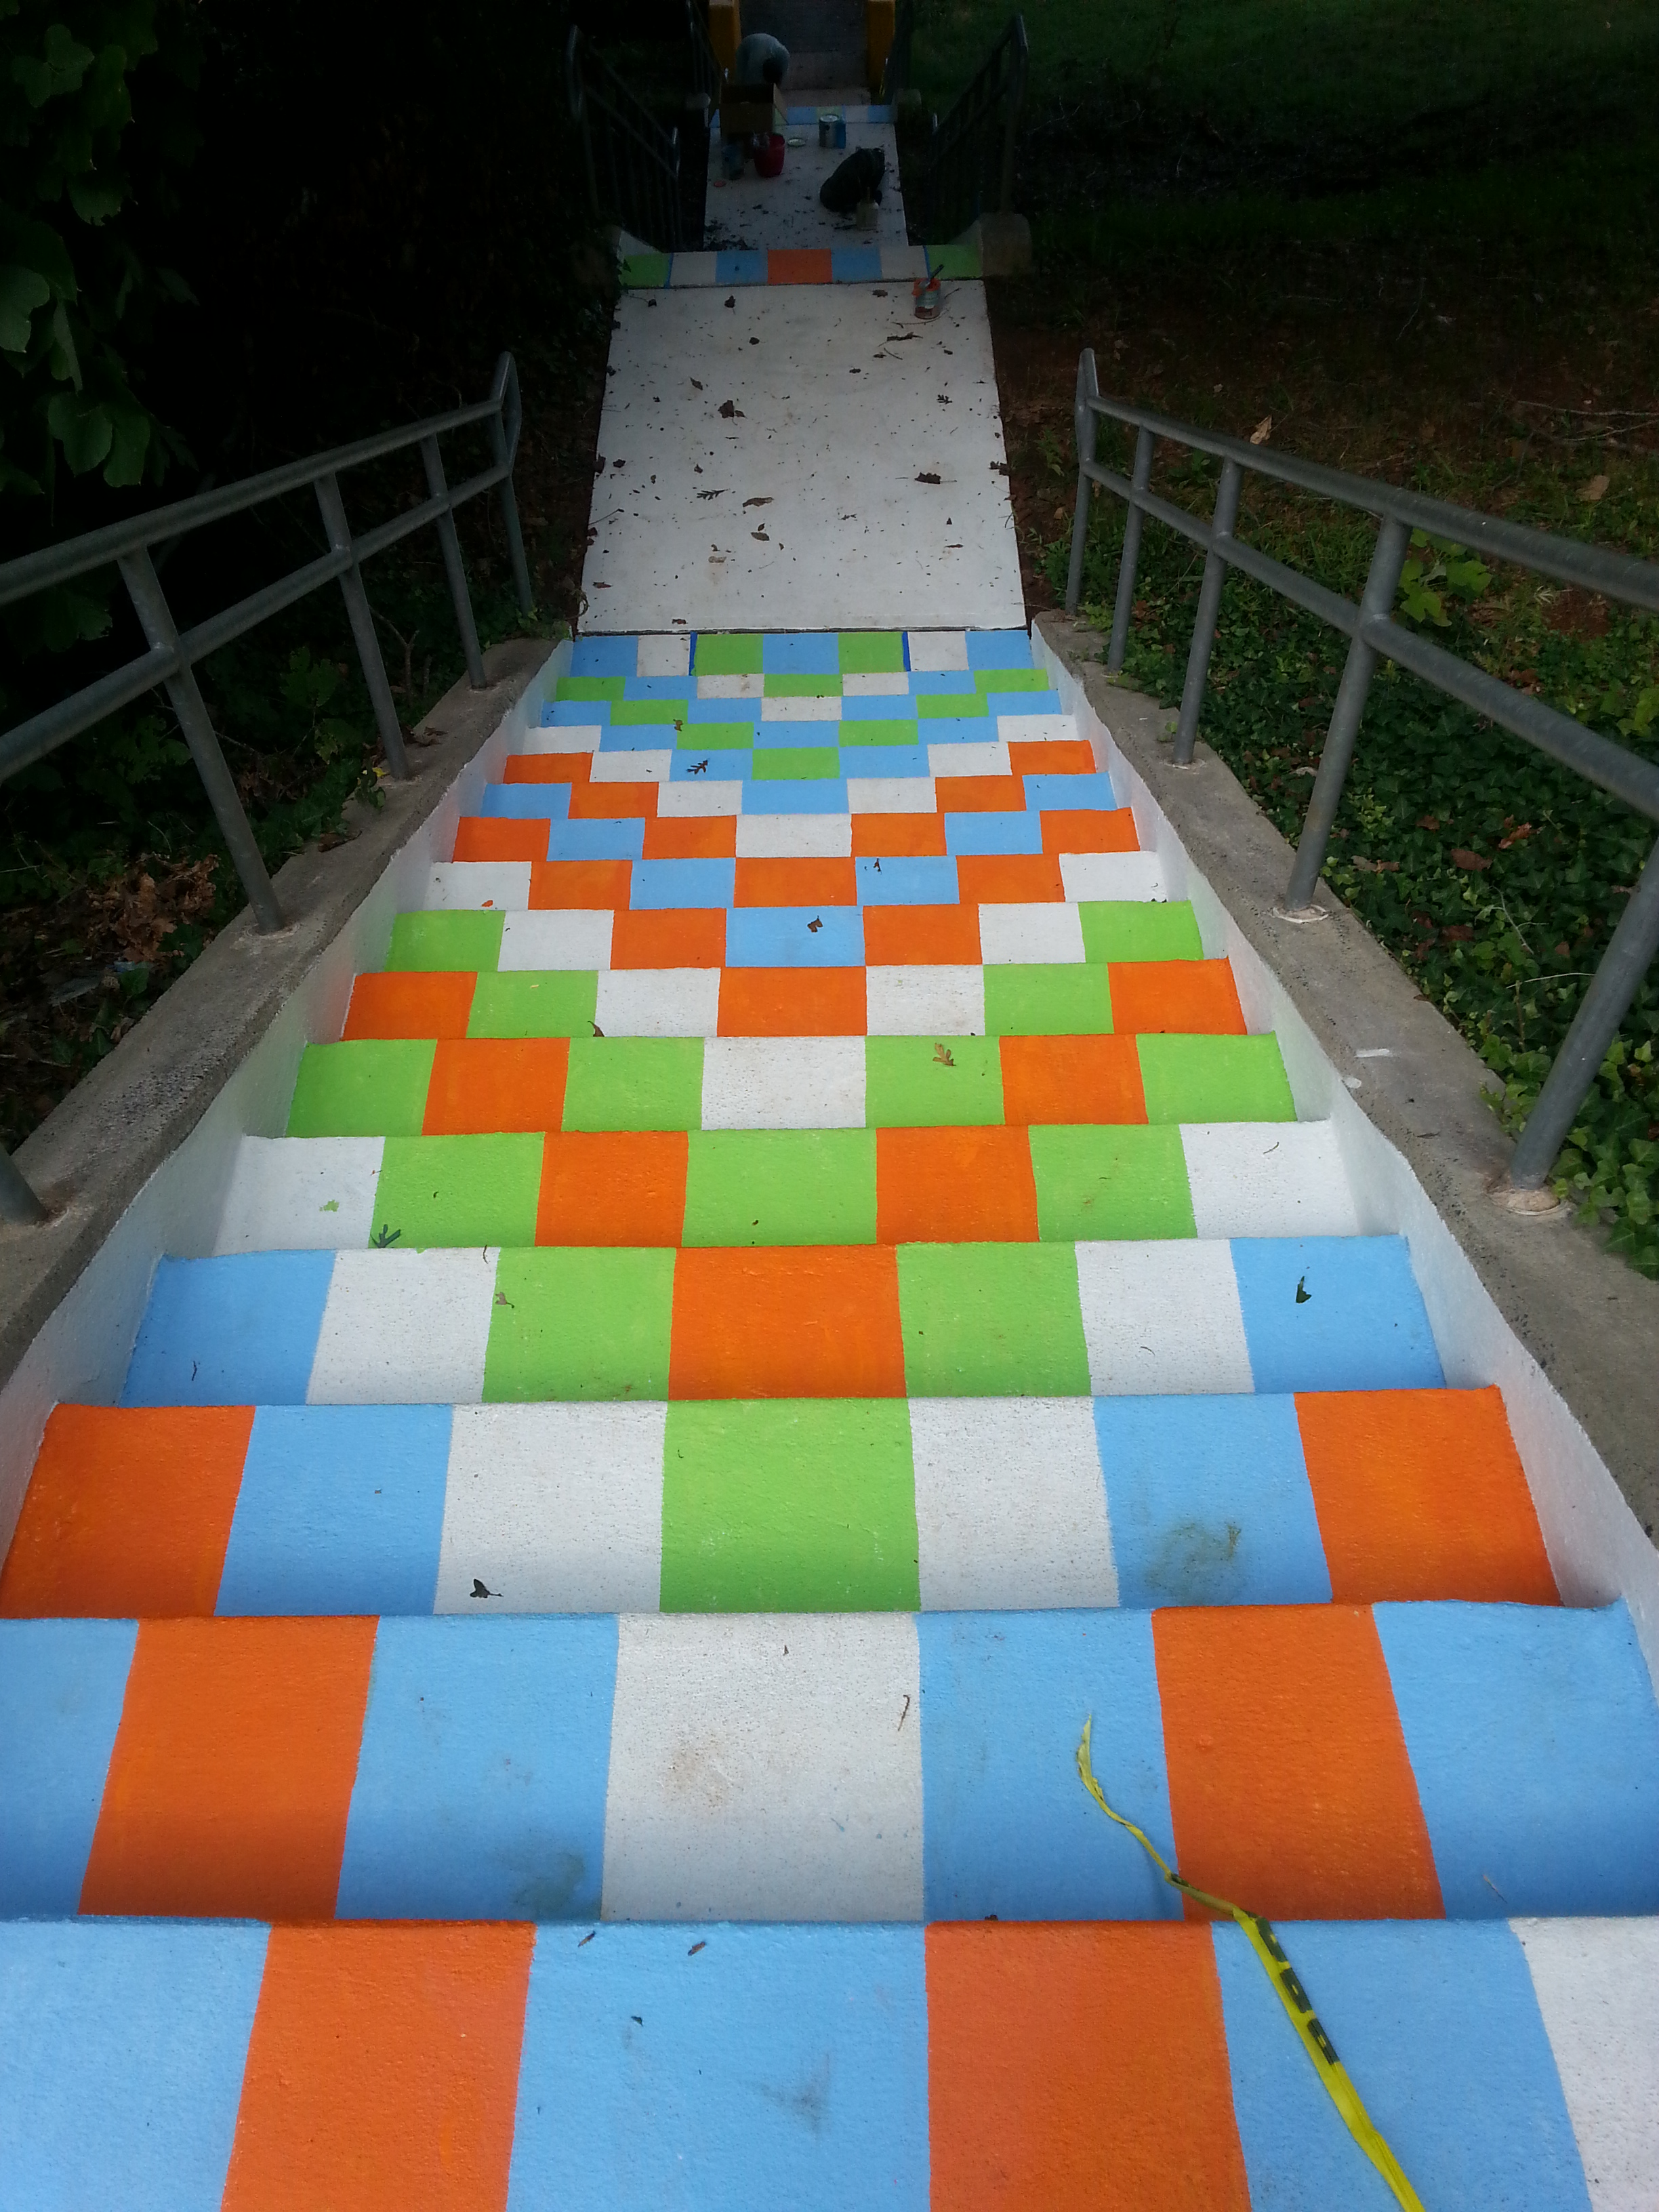 Stairs-Anita-Stroud-park-mural-no-barrers-project-2016-julio-gonzalez-art-stair-mura.jpg